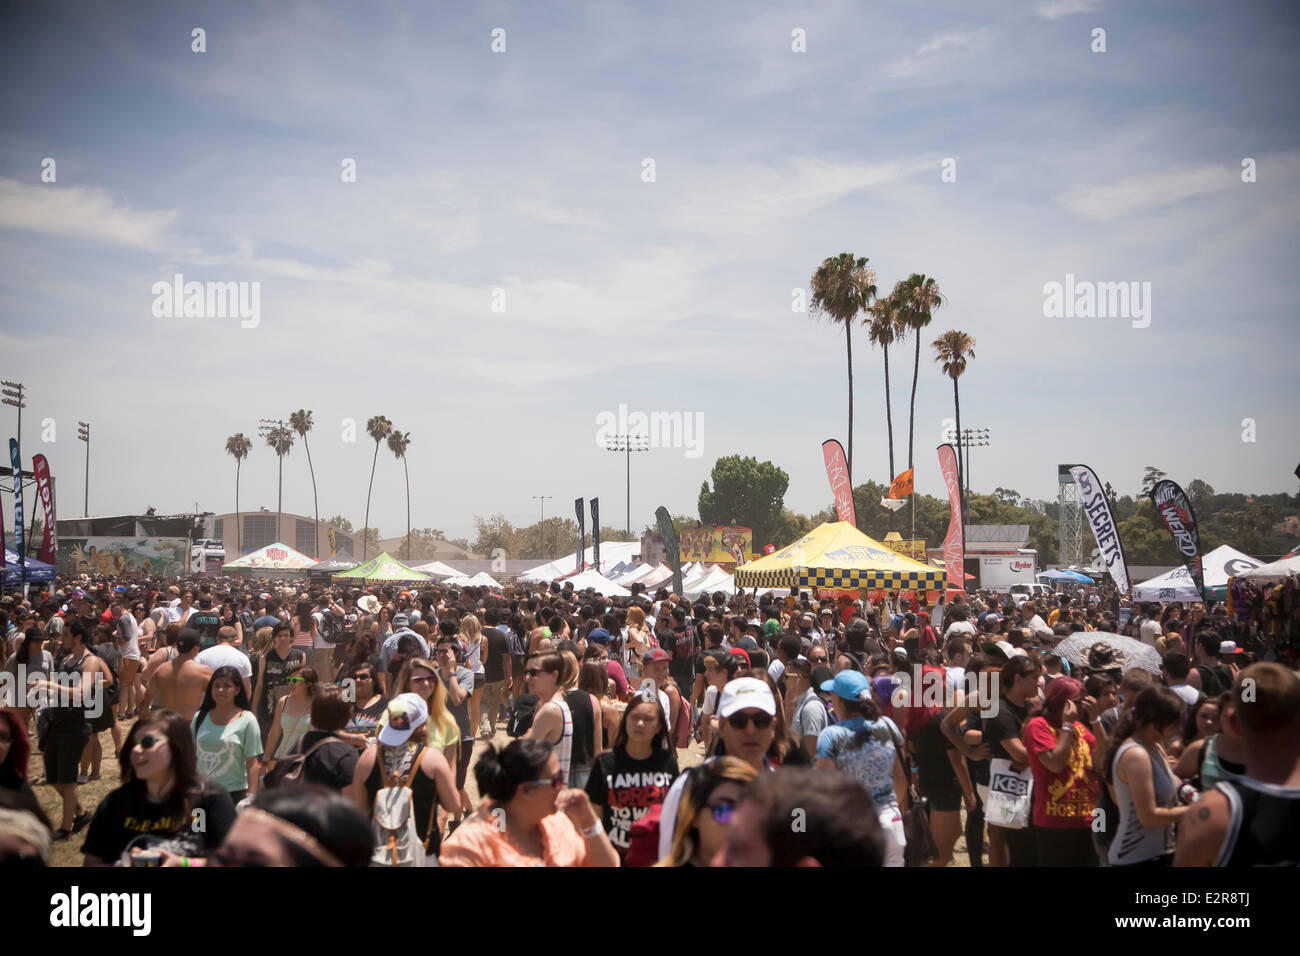 Pomona, CA, USA. 20th June, 2014. The crowd endures heat, sun, and dust at the Vans Warped Tour. Thousands of young - Stock Image